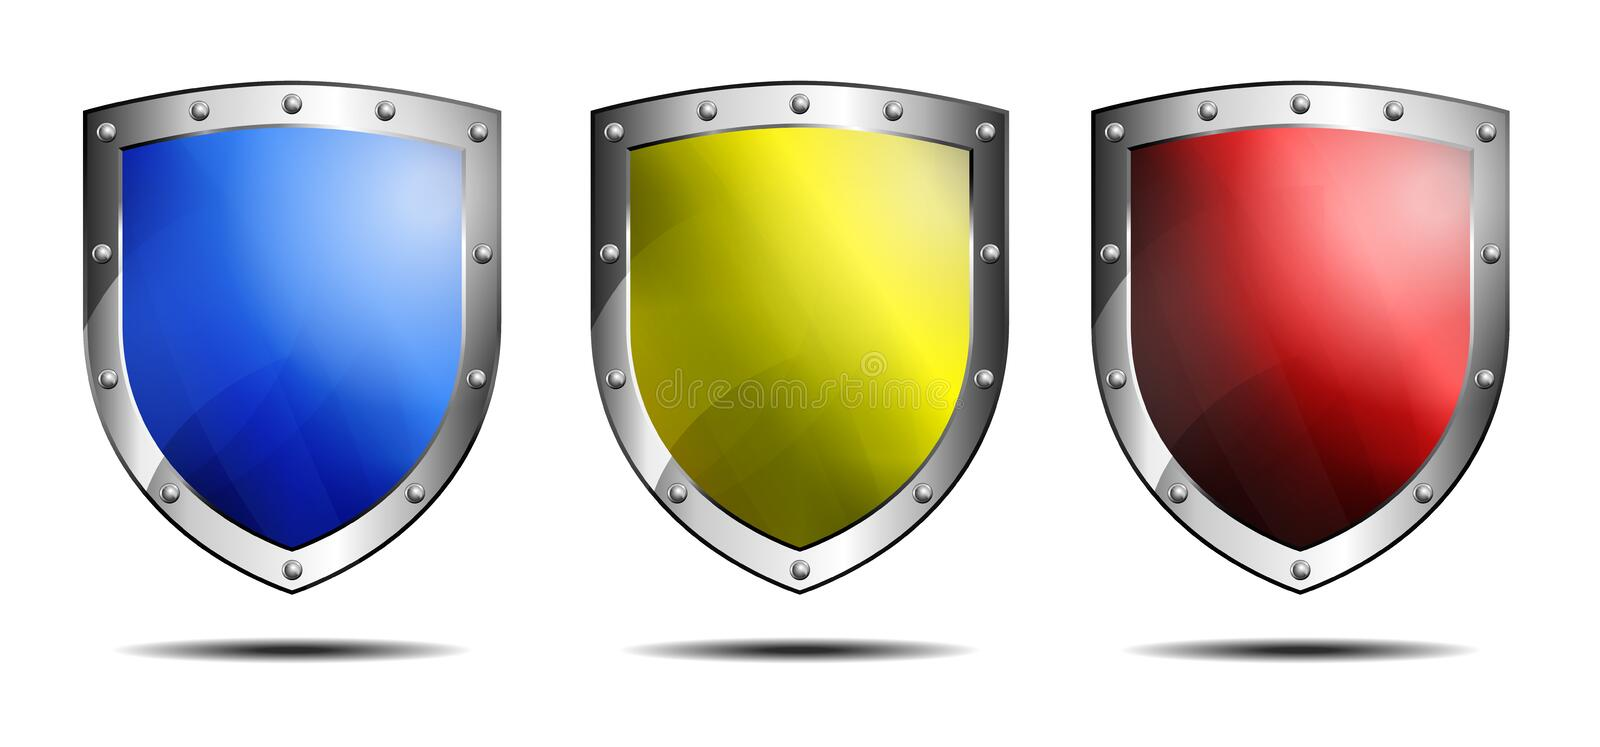 Three Shield Blue, Yellow and Red vector illustration